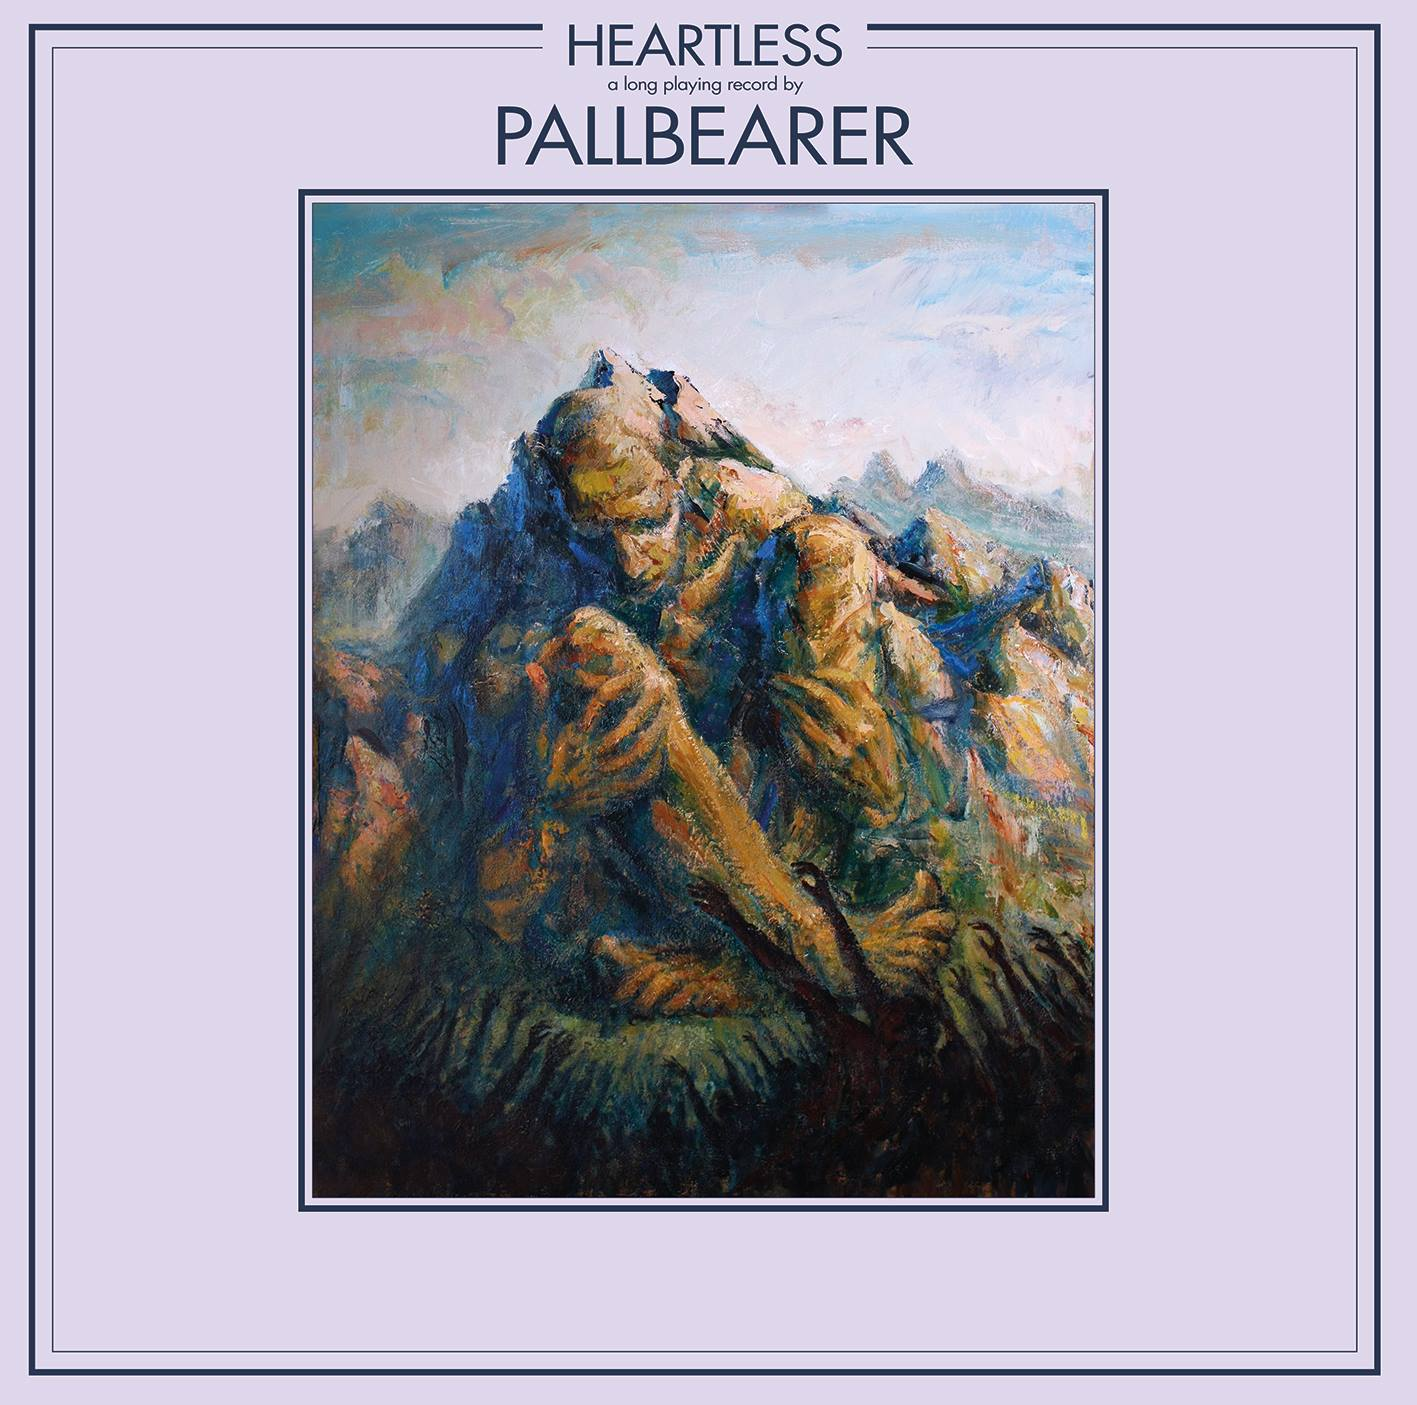 pallbearer heartless album Top 50 Albums of 2017